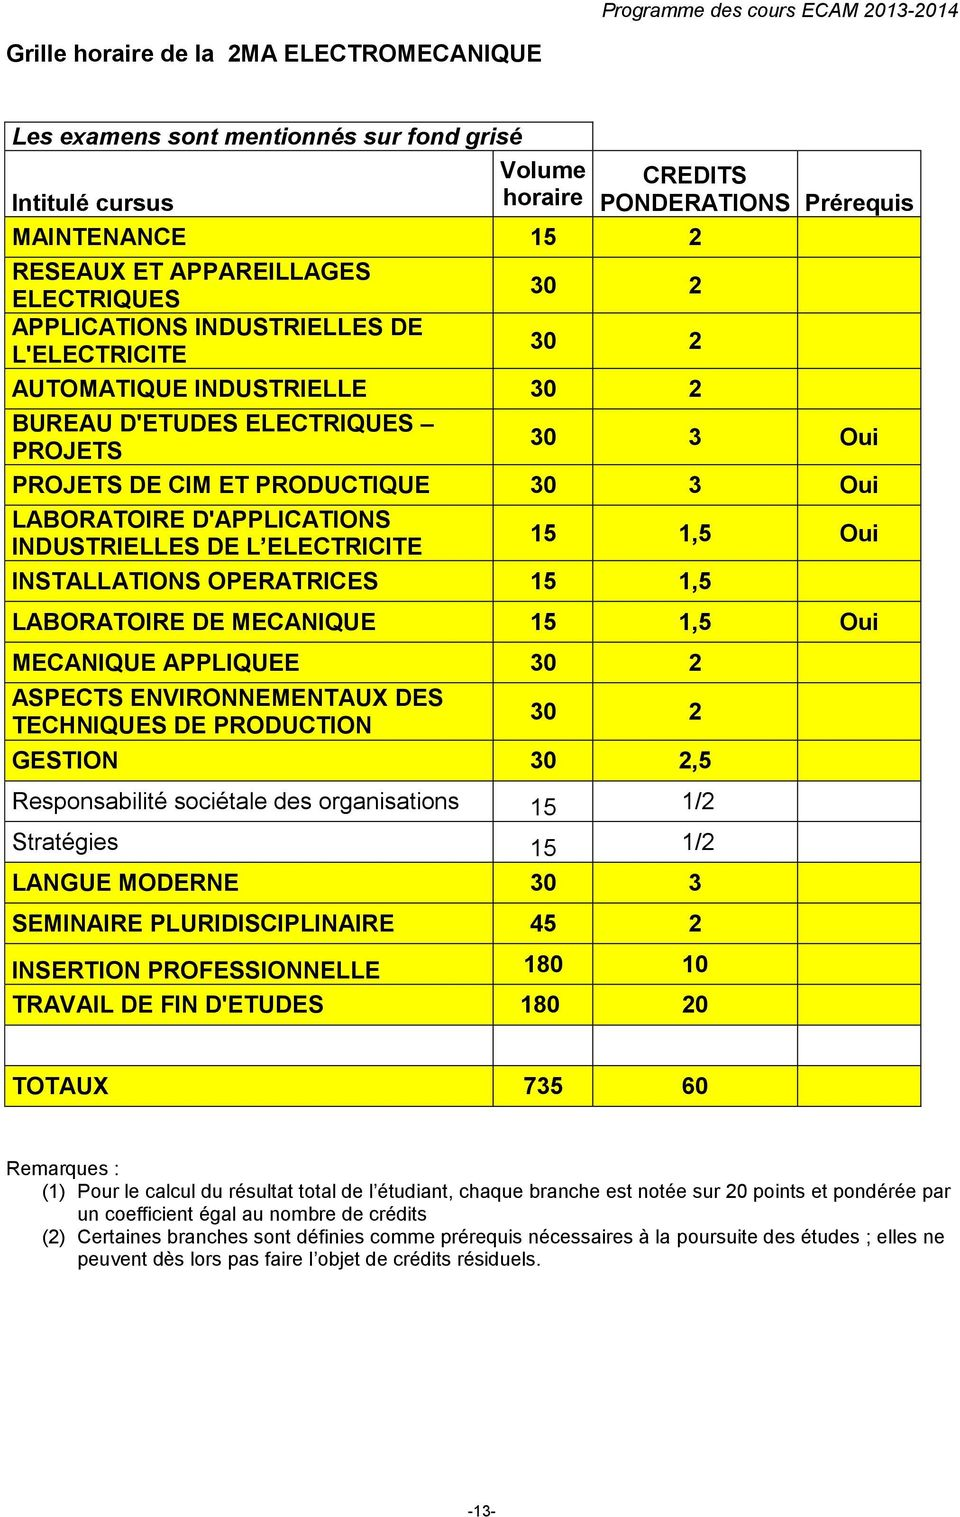 PRODUCTIQUE 30 3 Oui LABORATOIRE D'APPLICATIONS INDUSTRIELLES DE L ELECTRICITE 15 1,5 Oui INSTALLATIONS OPERATRICES 15 1,5 LABORATOIRE DE MECANIQUE 15 1,5 Oui MECANIQUE APPLIQUEE 30 2 ASPECTS